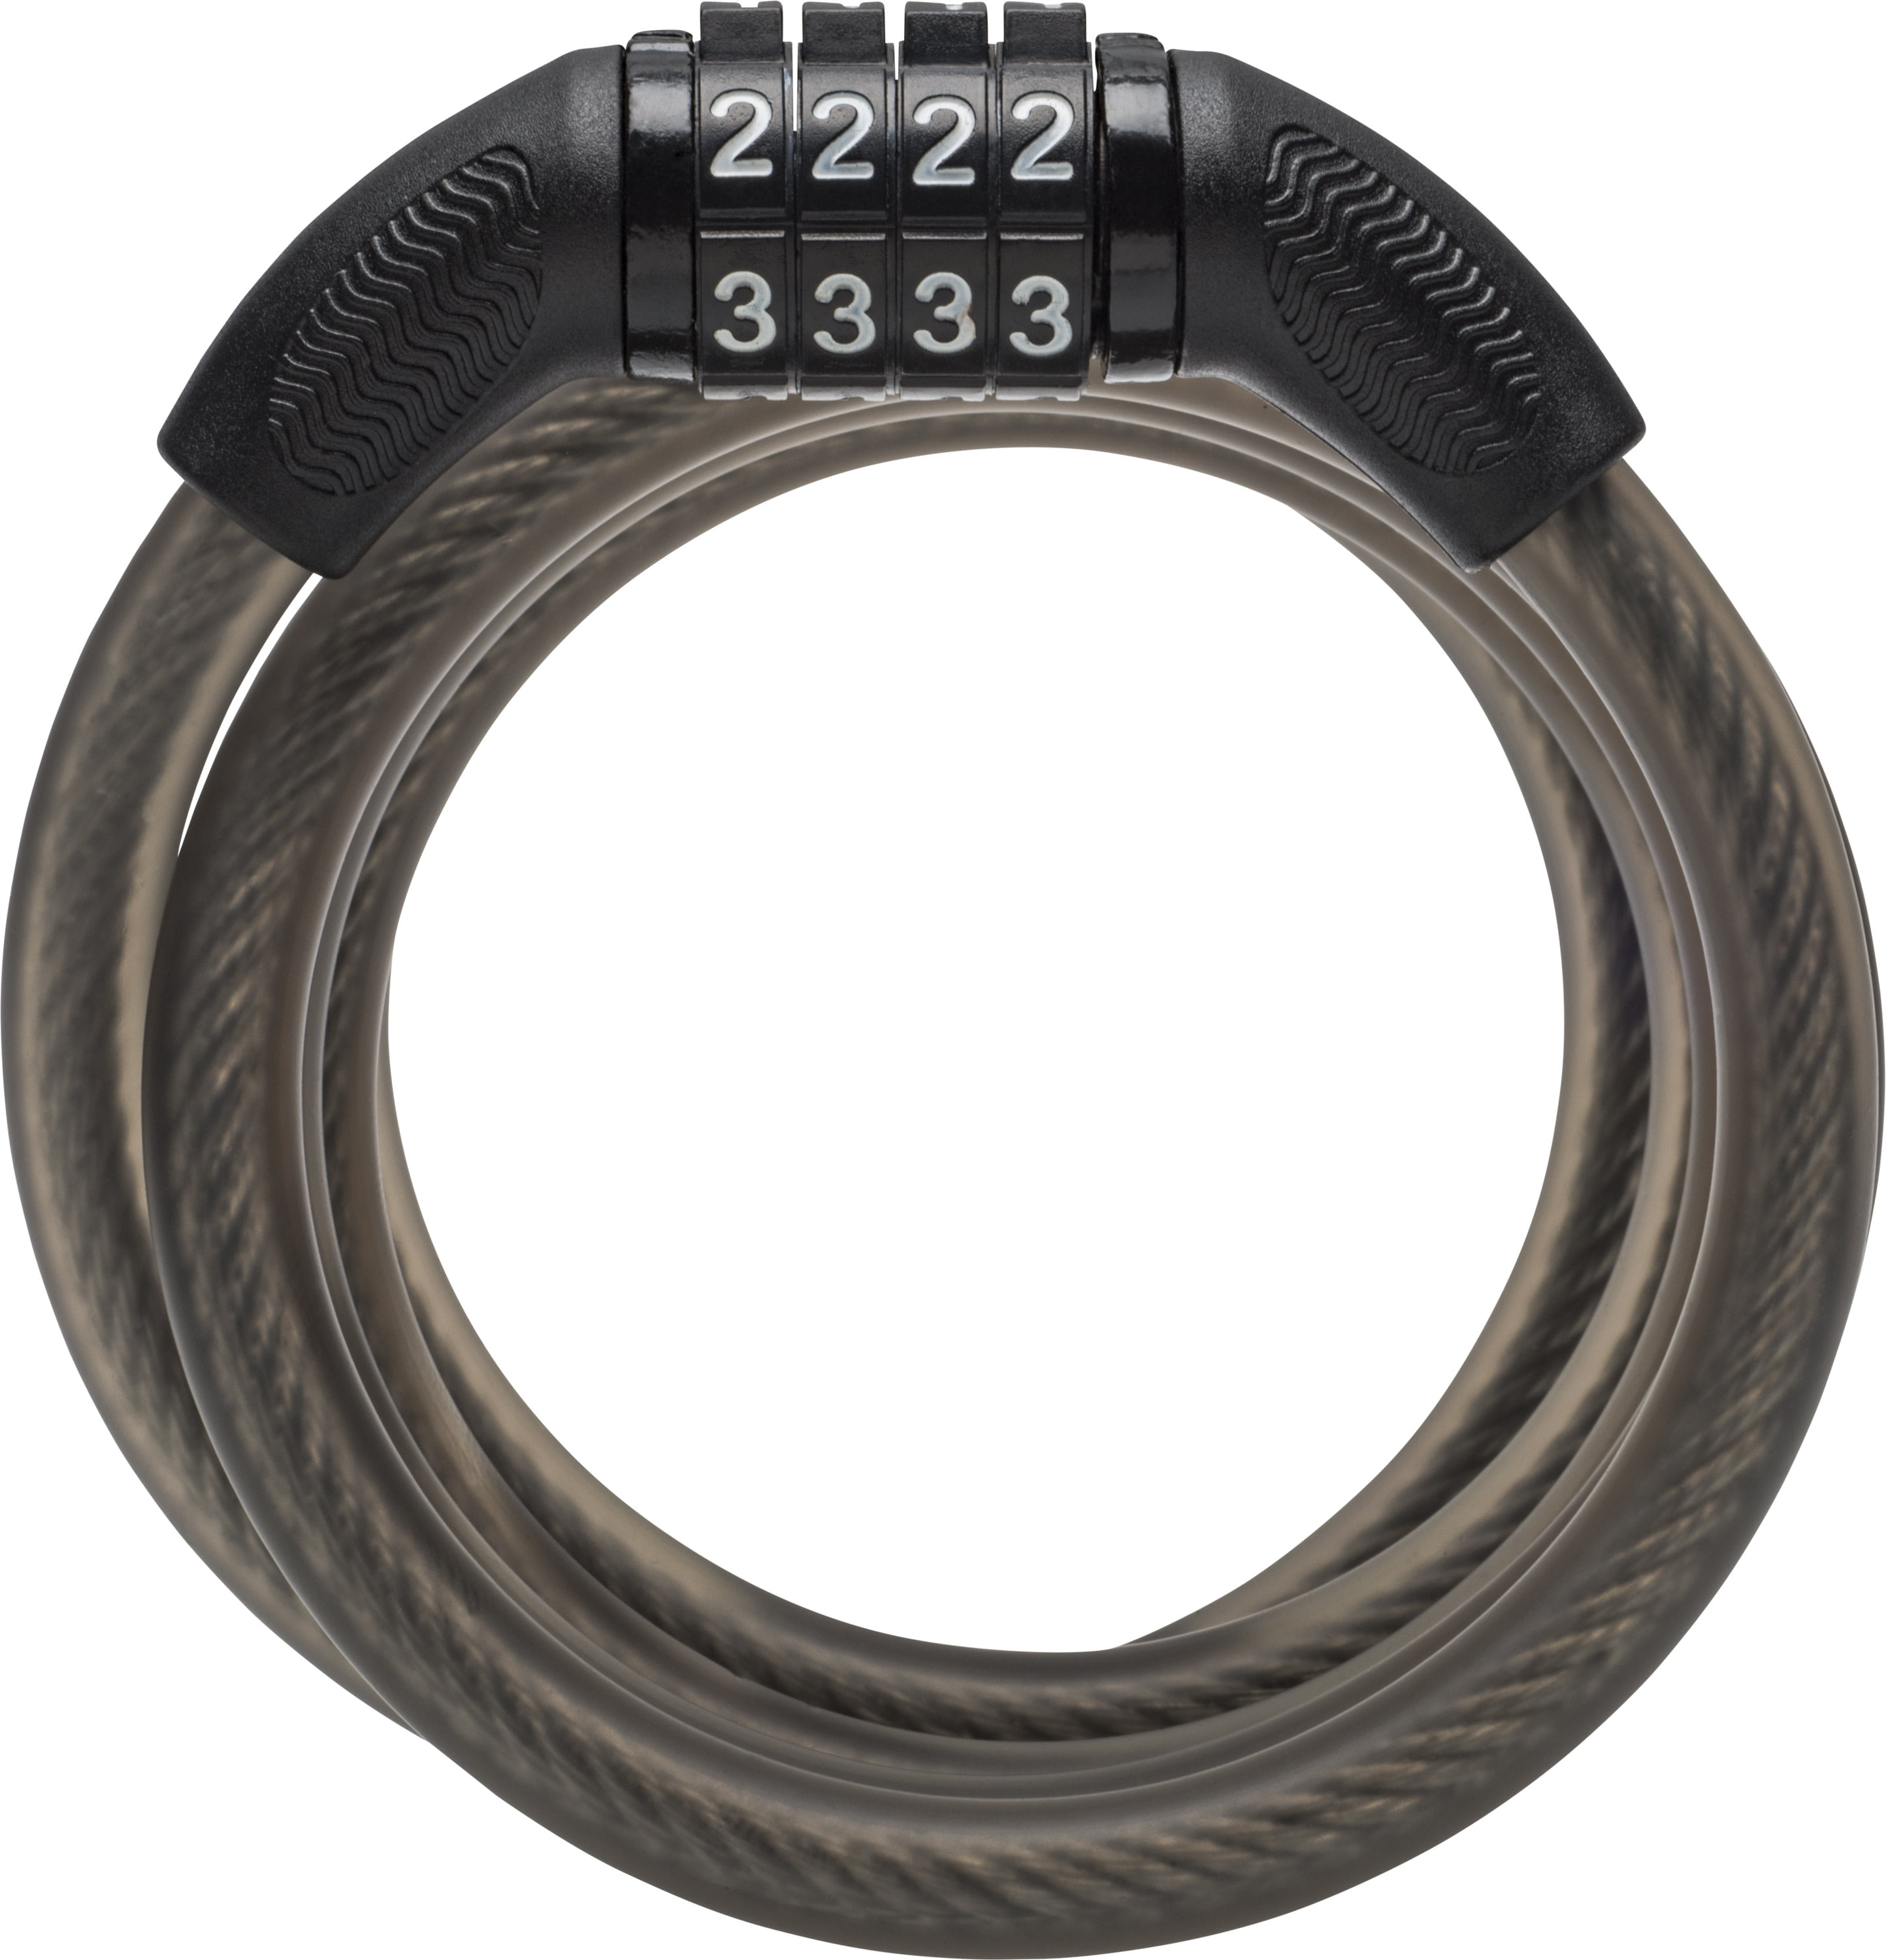 Details about  /COMBINATION NUMBER CODE BIKE BICYCLE CYCLE LOCK 8MM BY 650MM STEEL CABLE RED